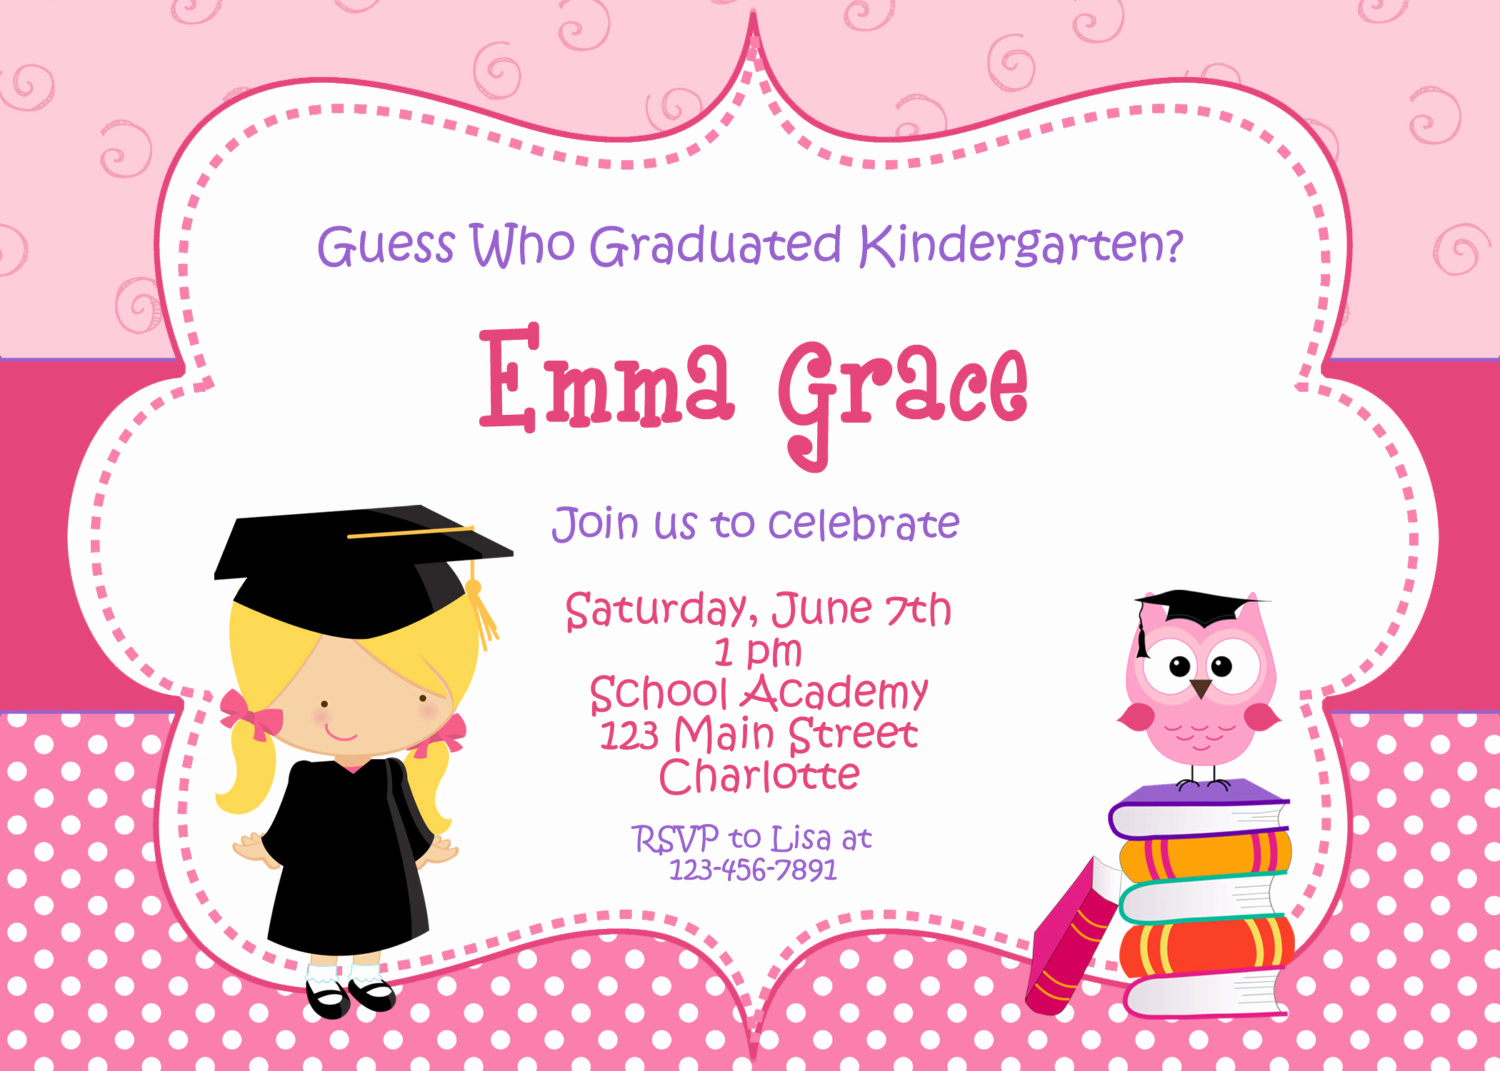 Preschool Graduation Invitation Ideas Beautiful Kindergarten Graduation Invitation Graduation Preschool